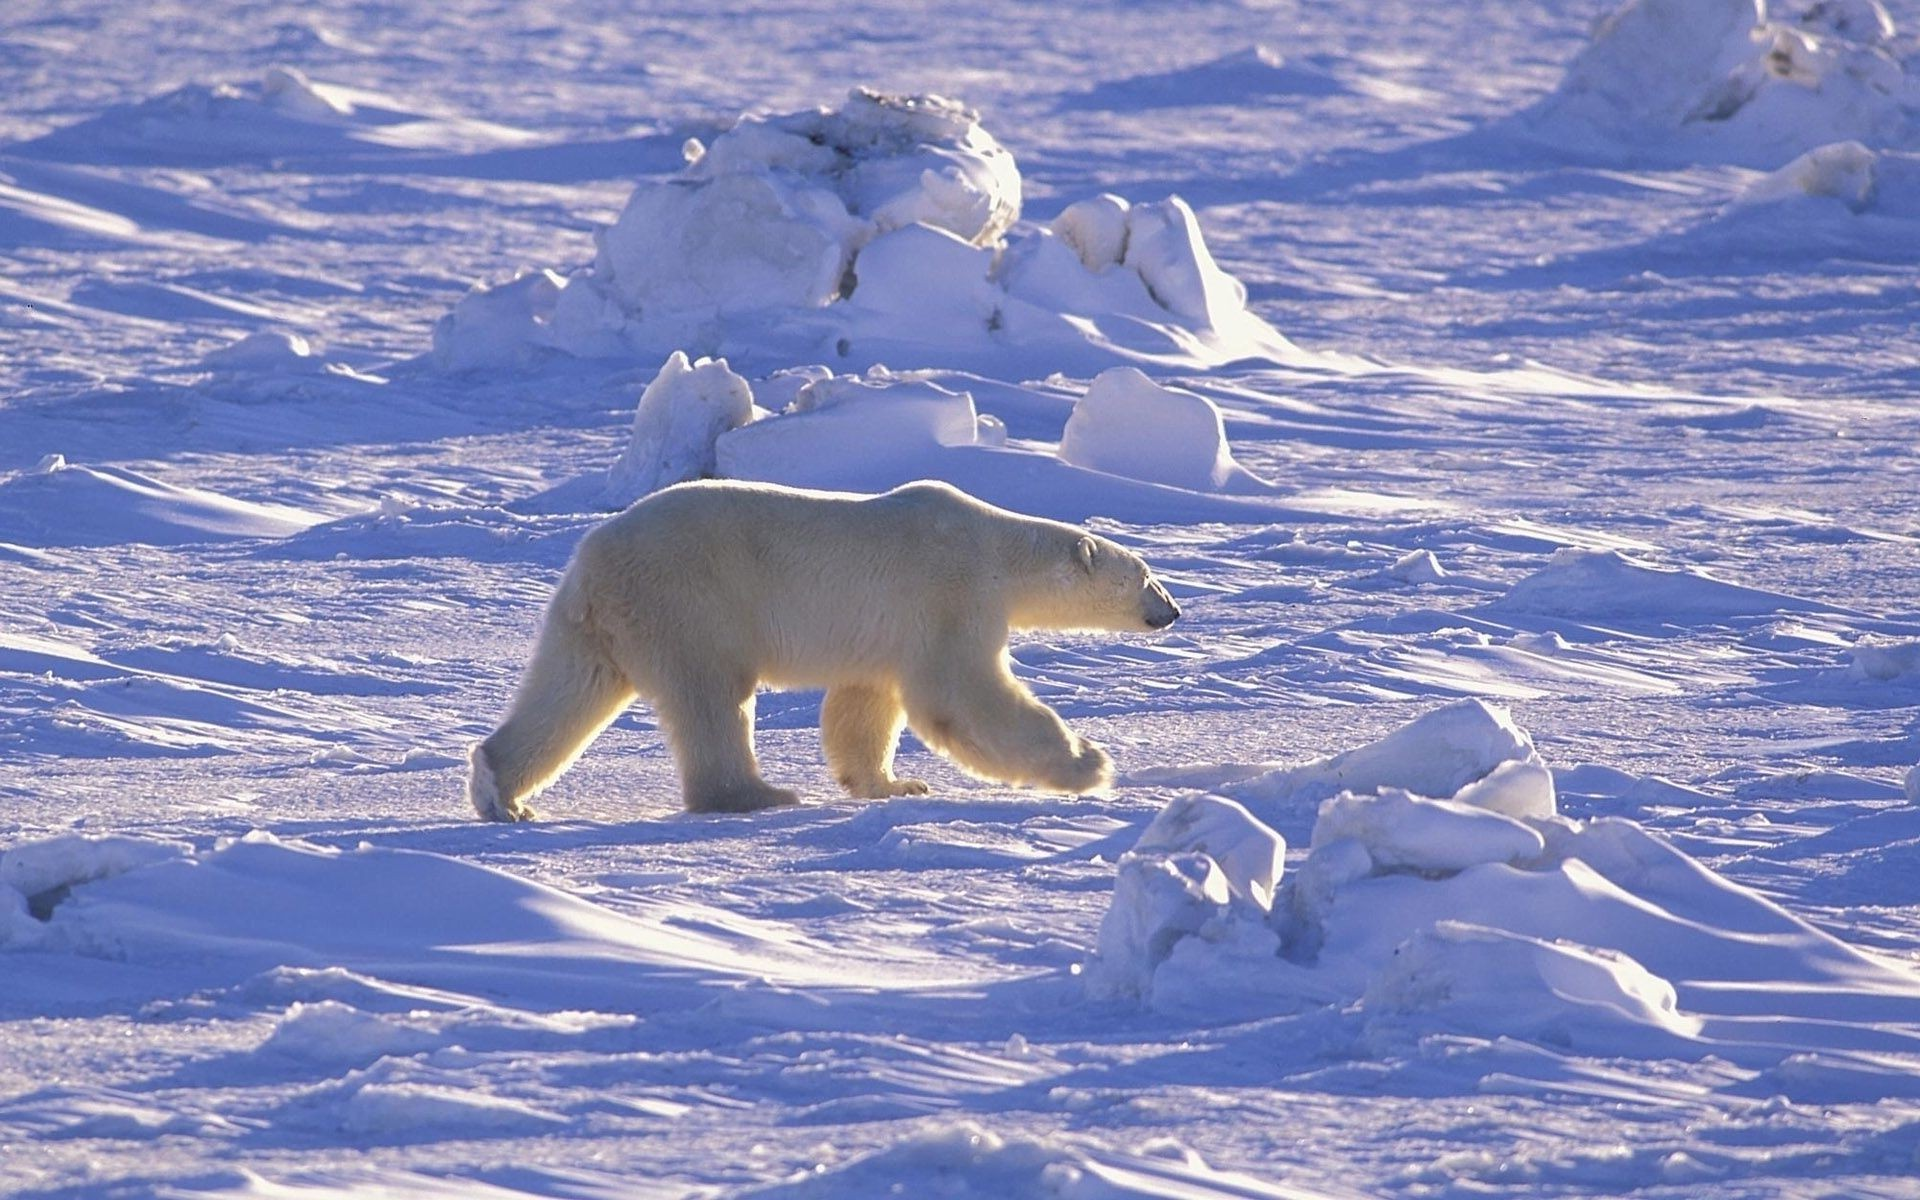 bears snow winter frosty ice cold polar frozen frost nature outdoors water mammal landscape wildlife